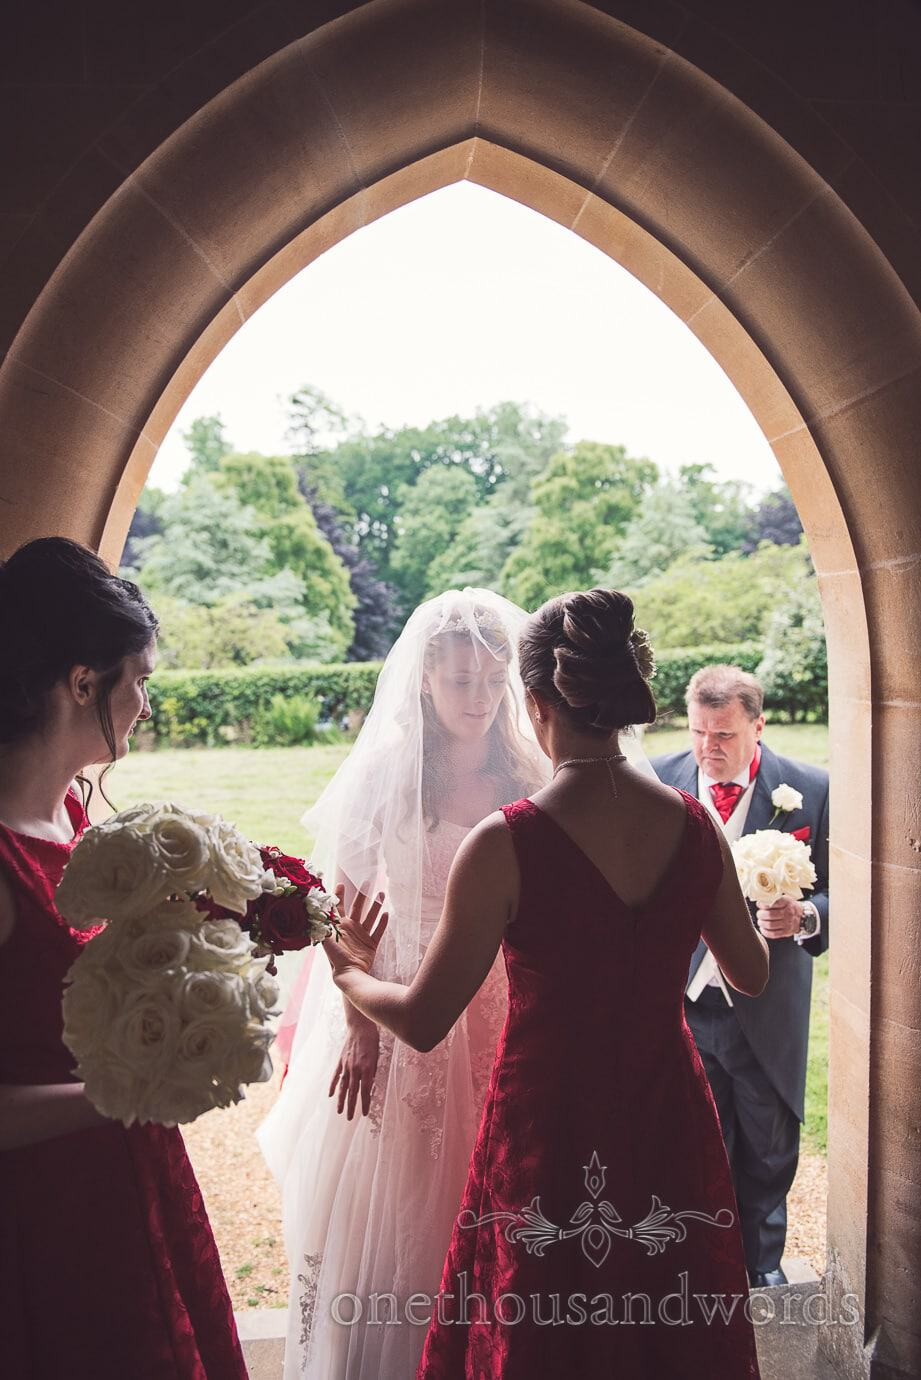 Bride in wedding veil under stone church arched doorway